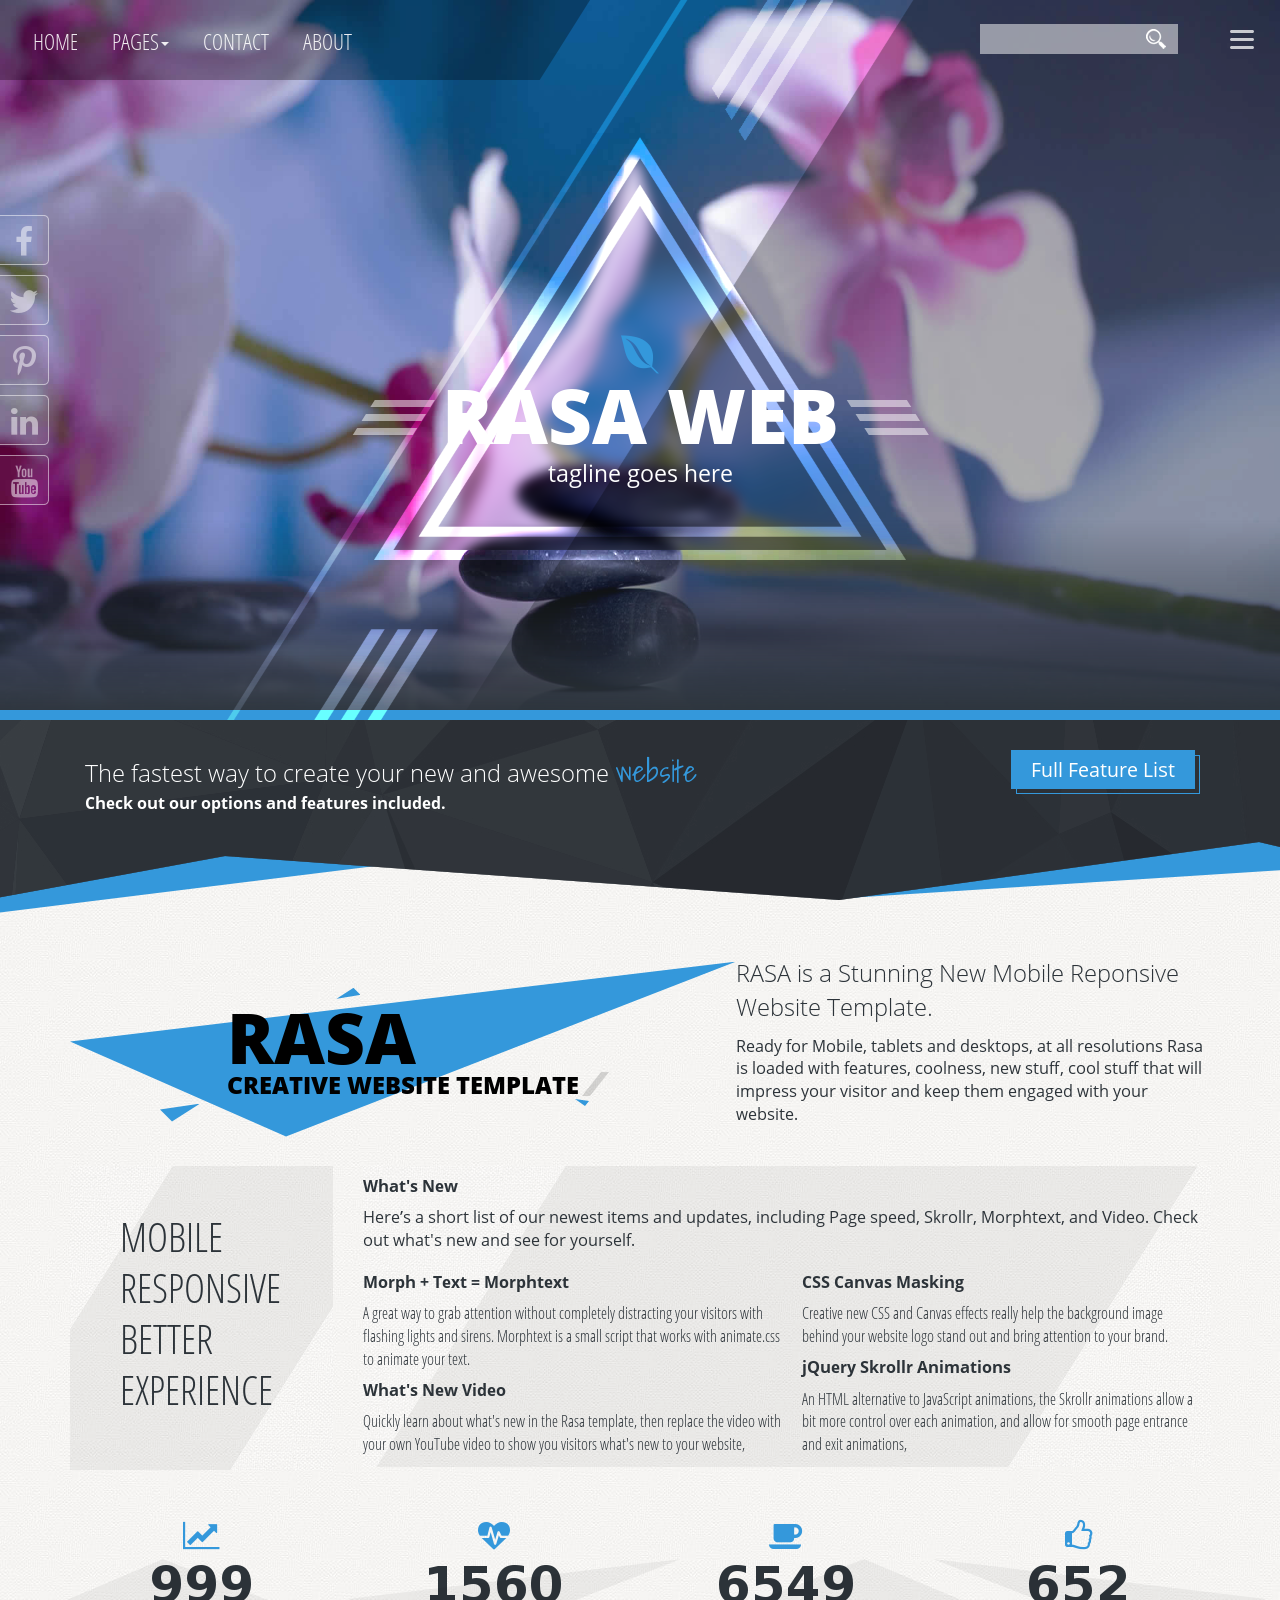 Rasa HD Spa BlueBlack Spa Web Template - Design your own website template